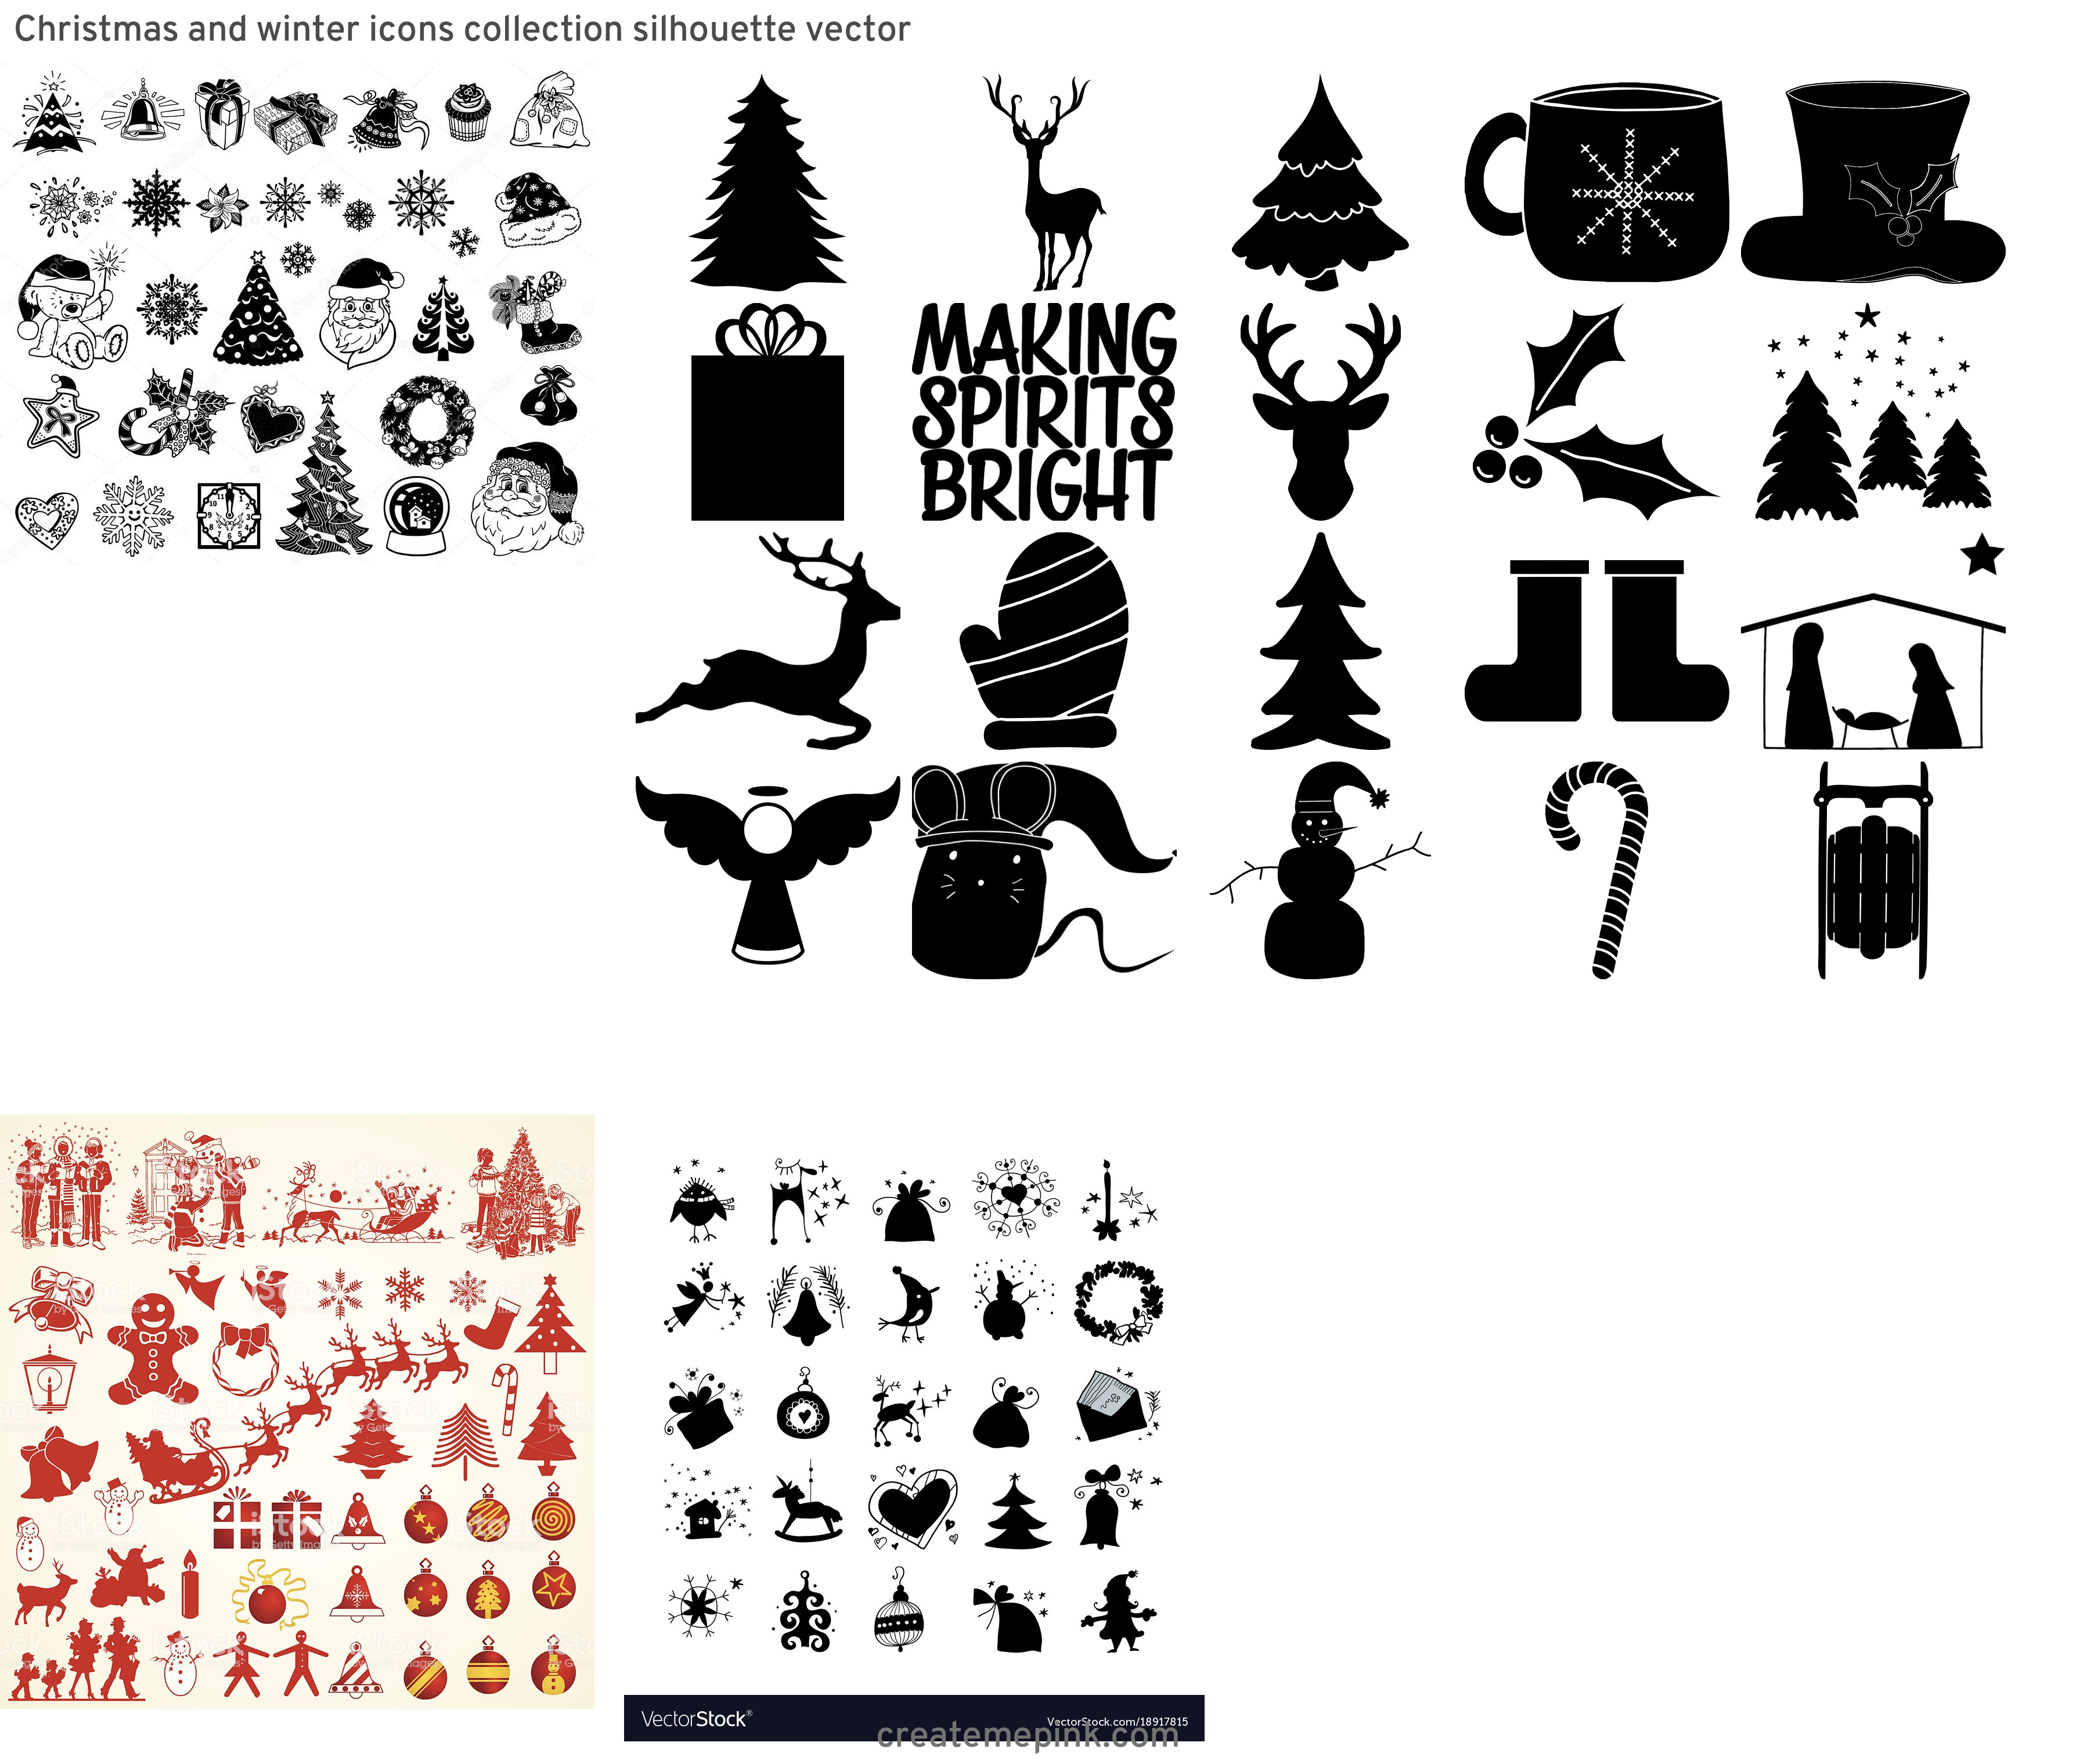 Christmas Silohette Vector: Christmas And Winter Icons Collection Silhouette Vector